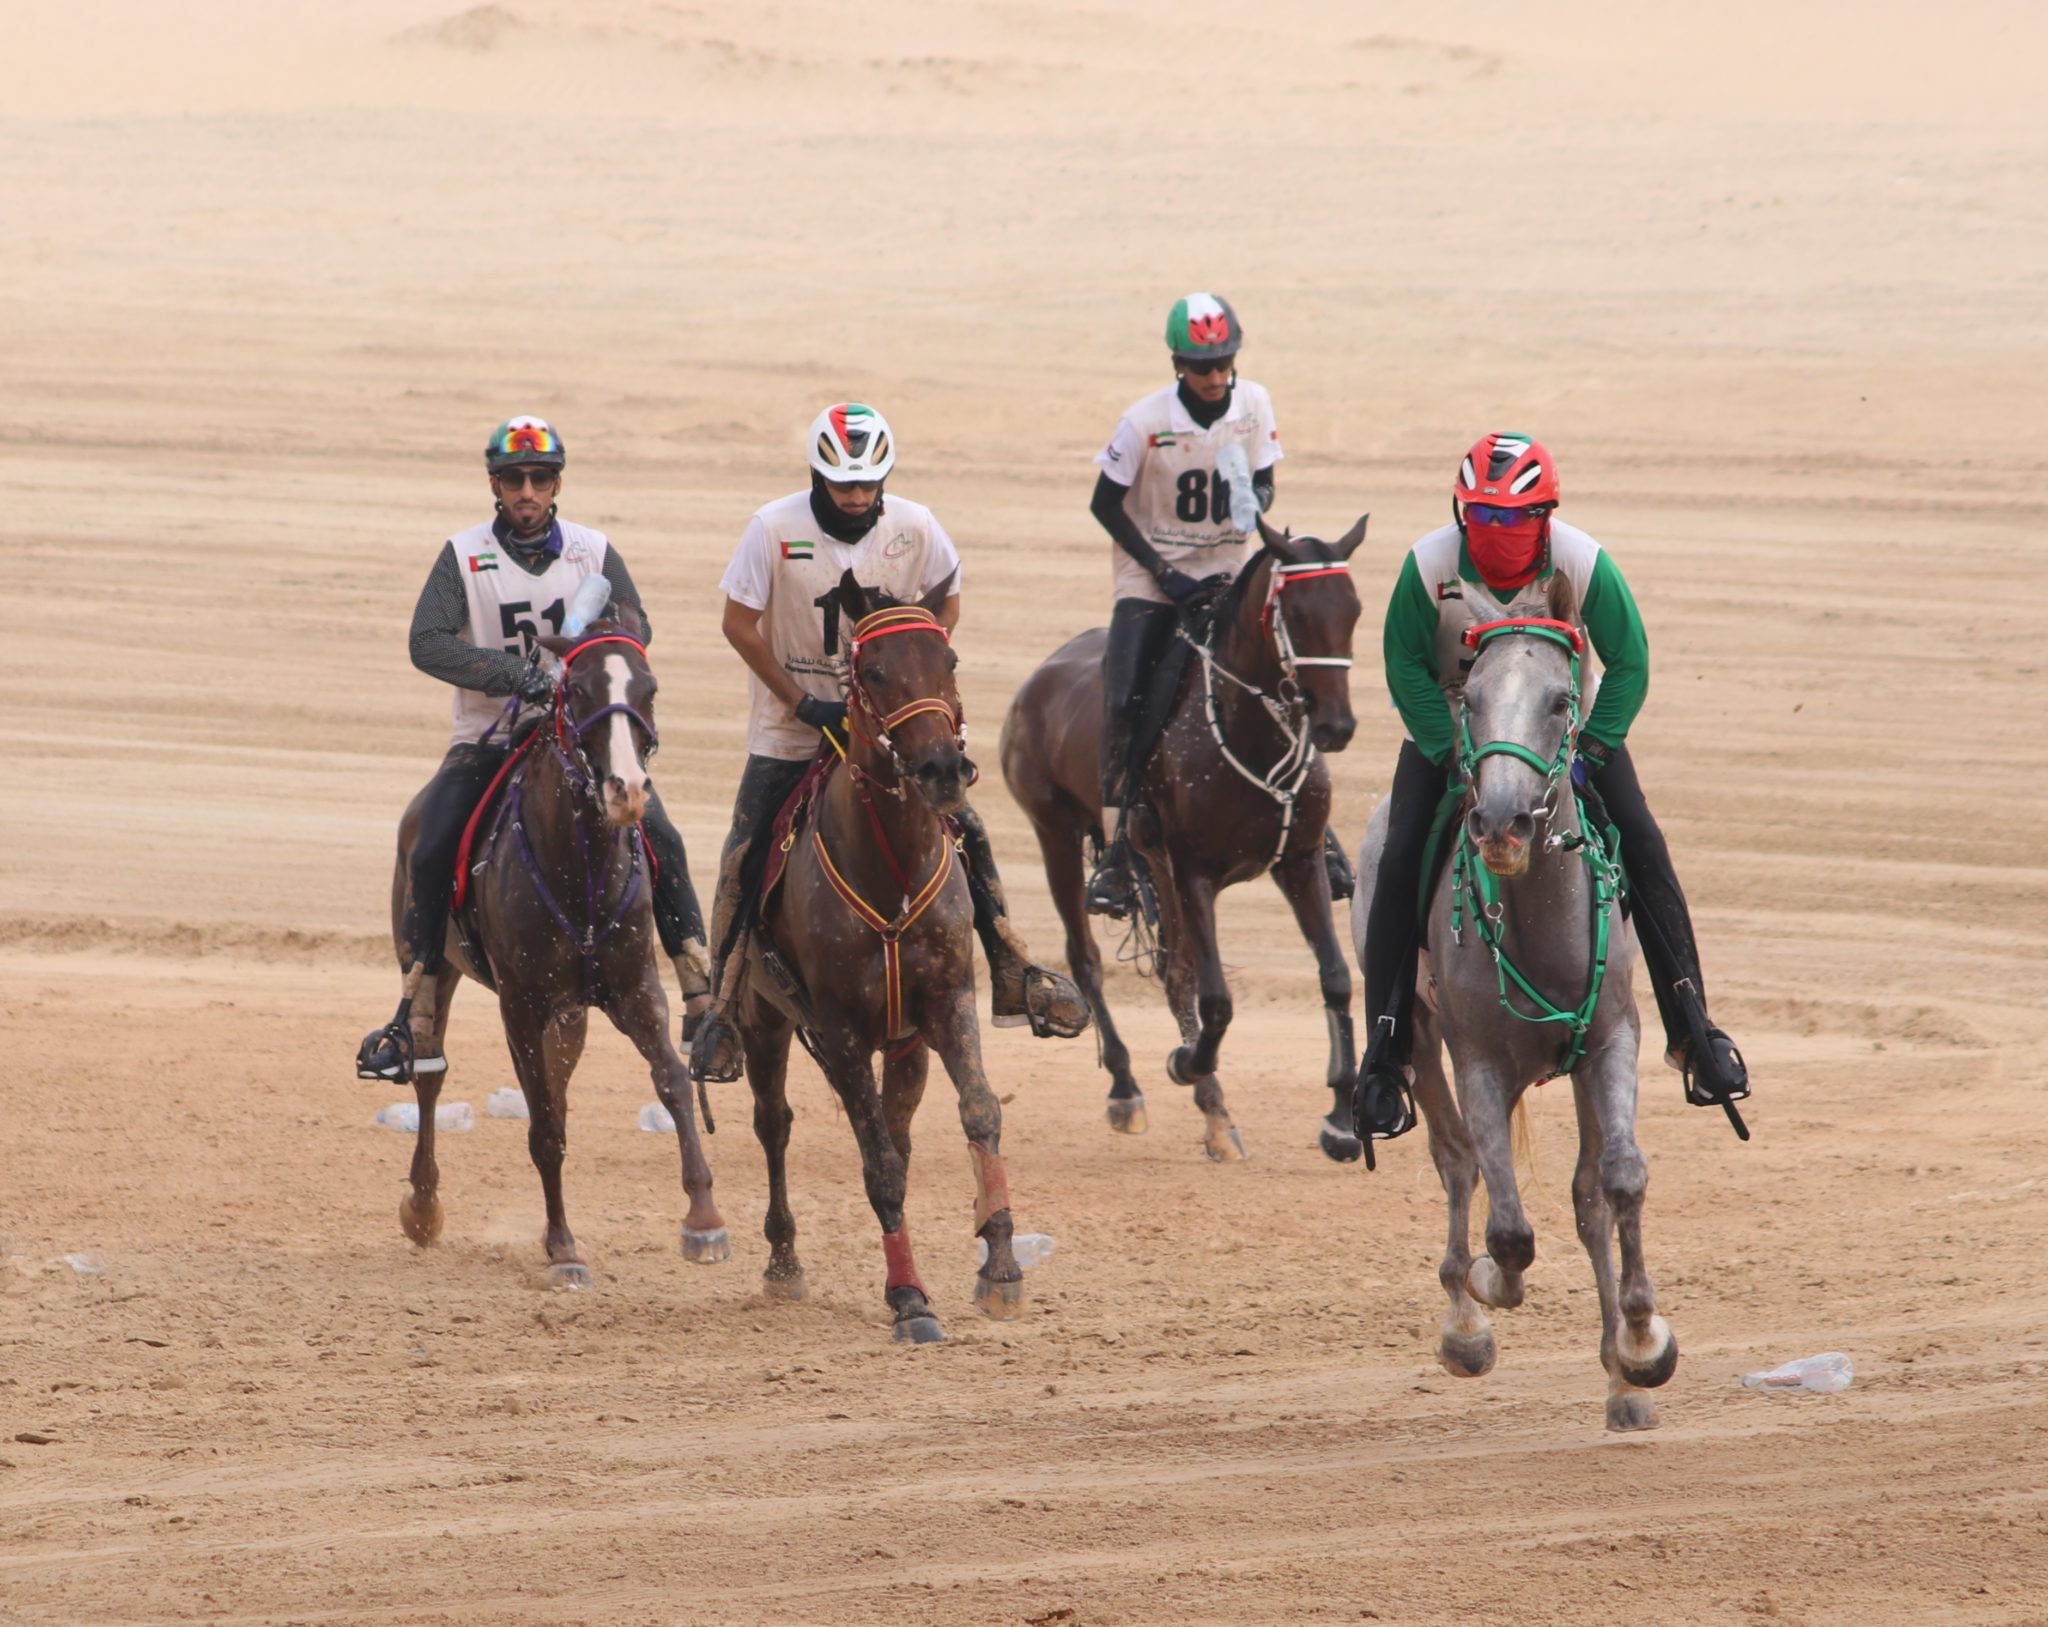 Endurance World Emirates International Endurance Cup. Riding in a group.